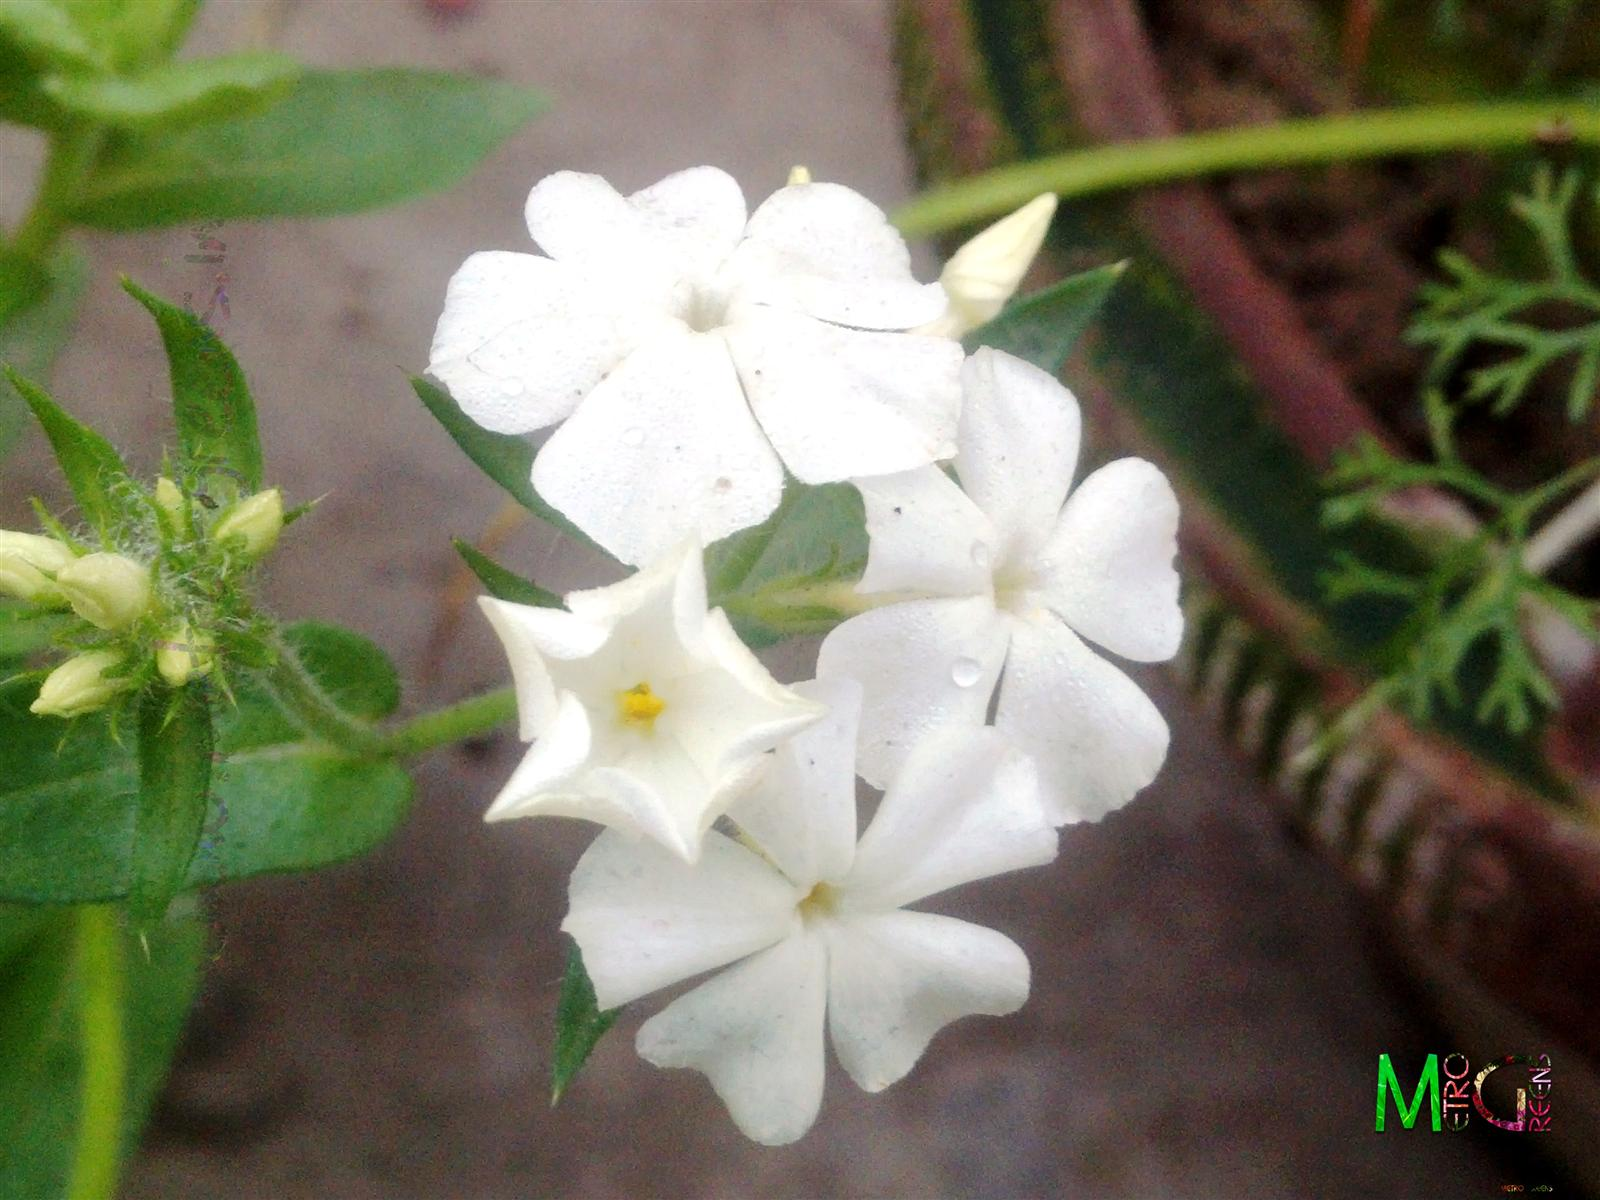 Metro Greens: White Phlox Blooms